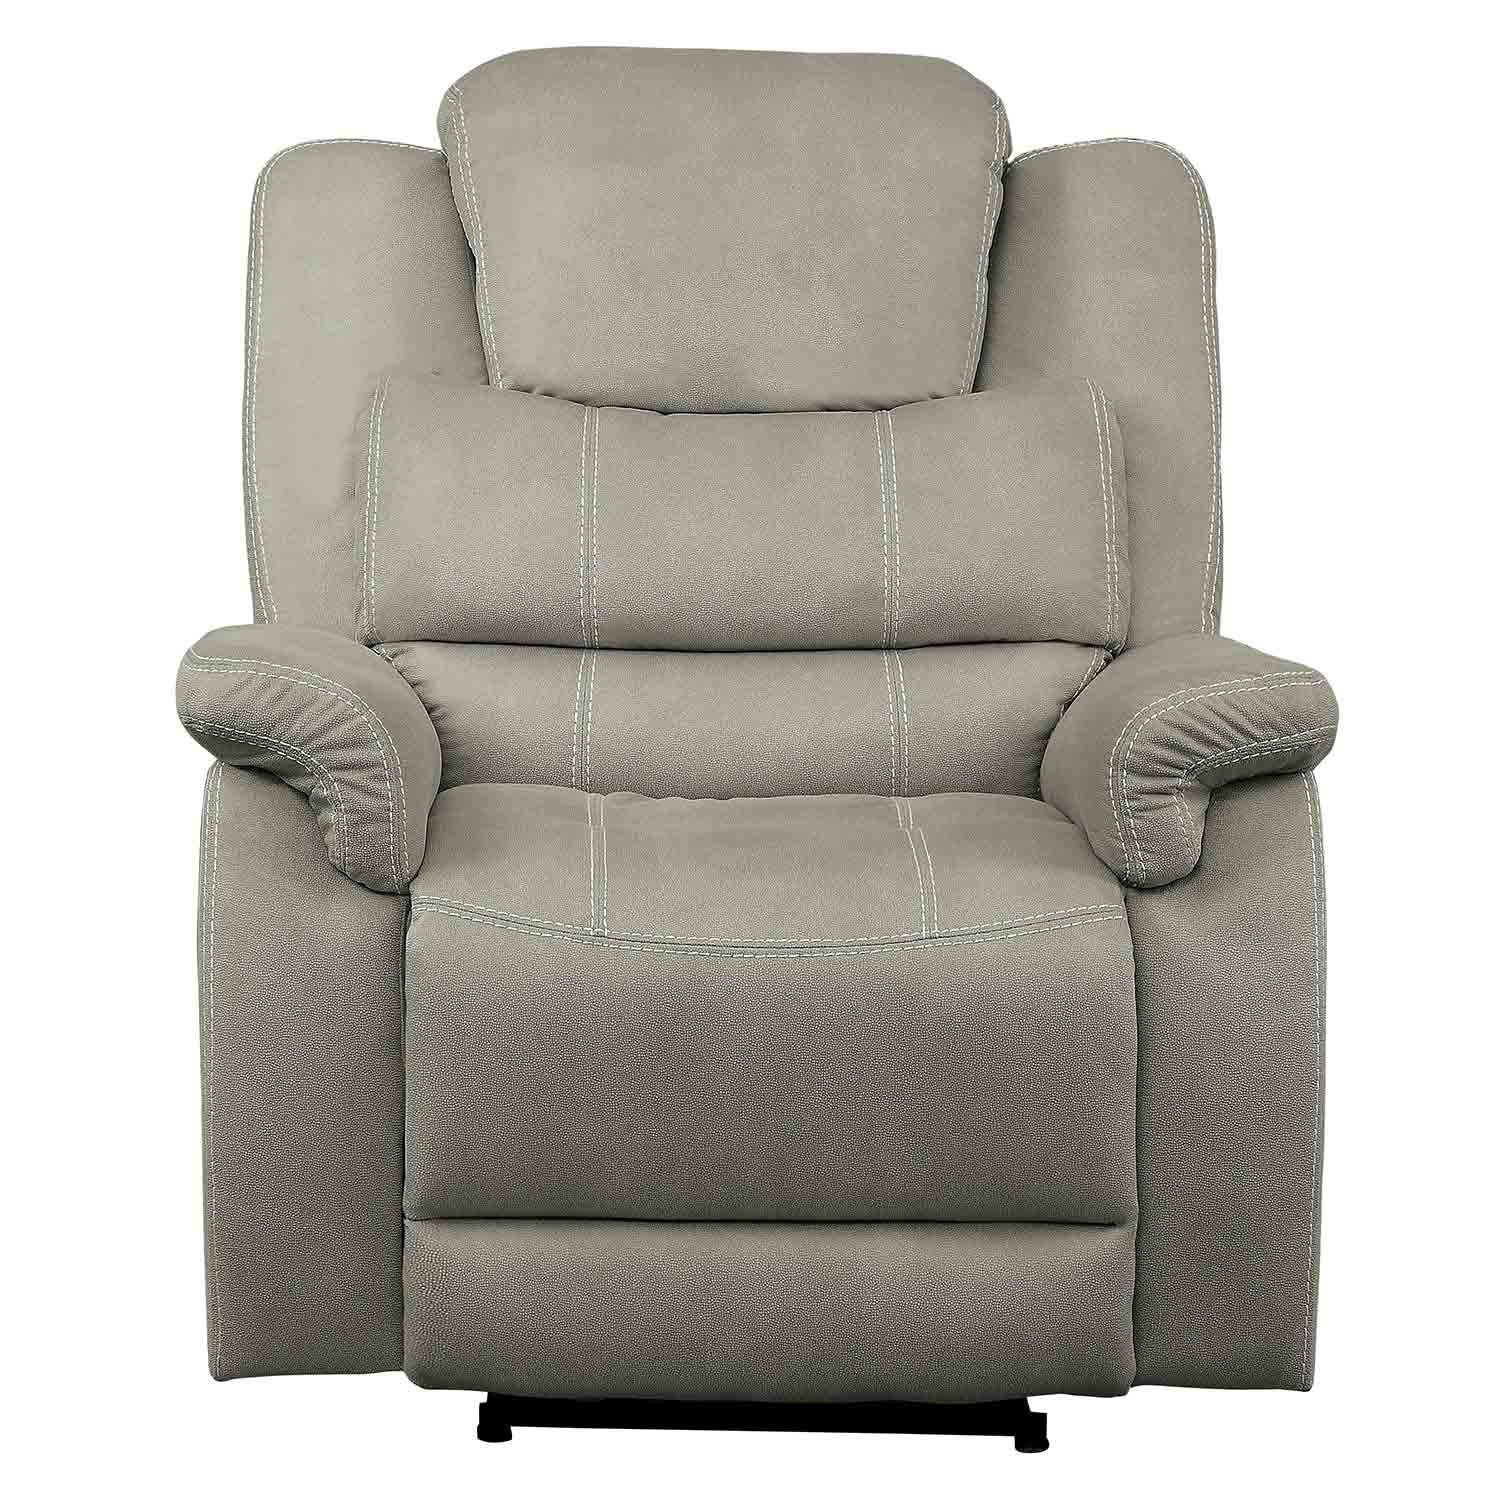 Homelegance Shola Glider Reclining Chair - Gray